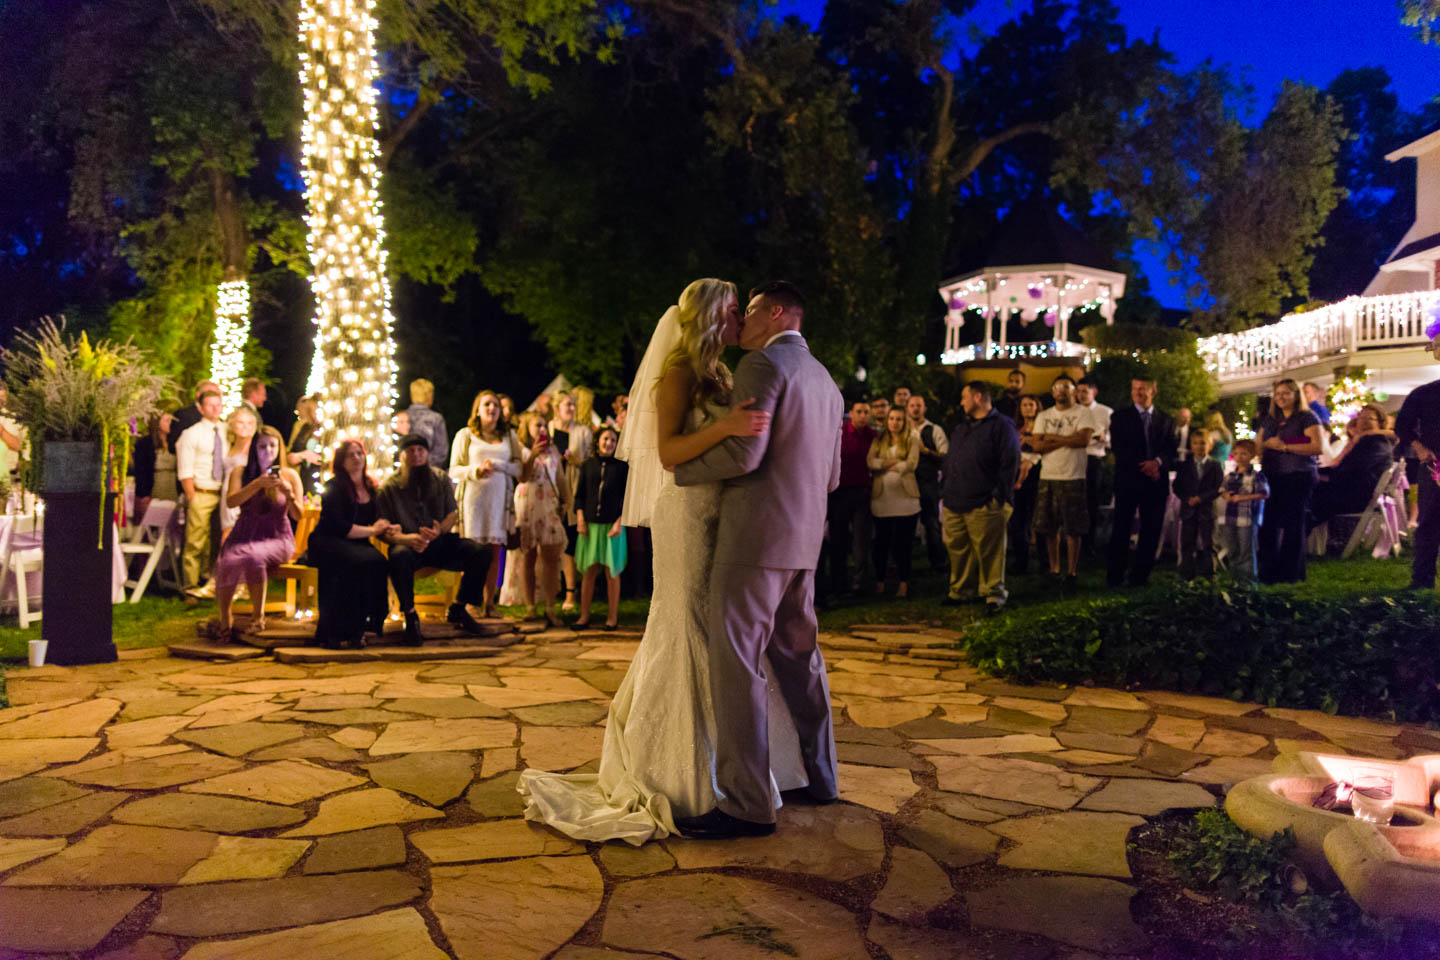 The first dance for the newly married couple